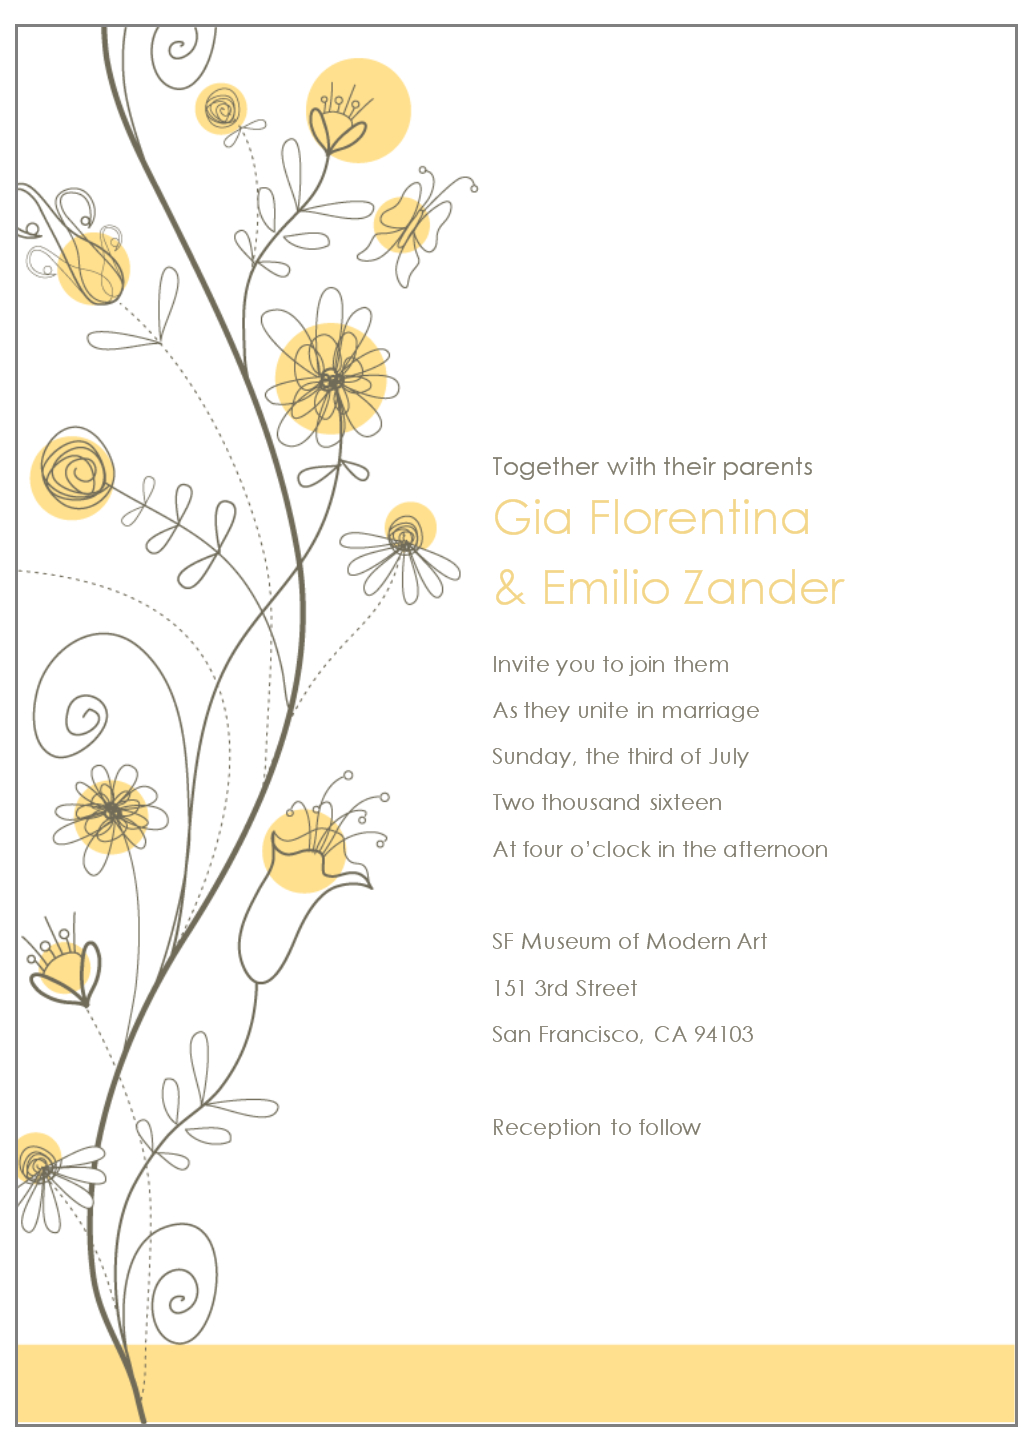 Email Postcard Template Awesome Email Wedding Invitation Templates Regarding Free E Wedding Invitation Card Templates